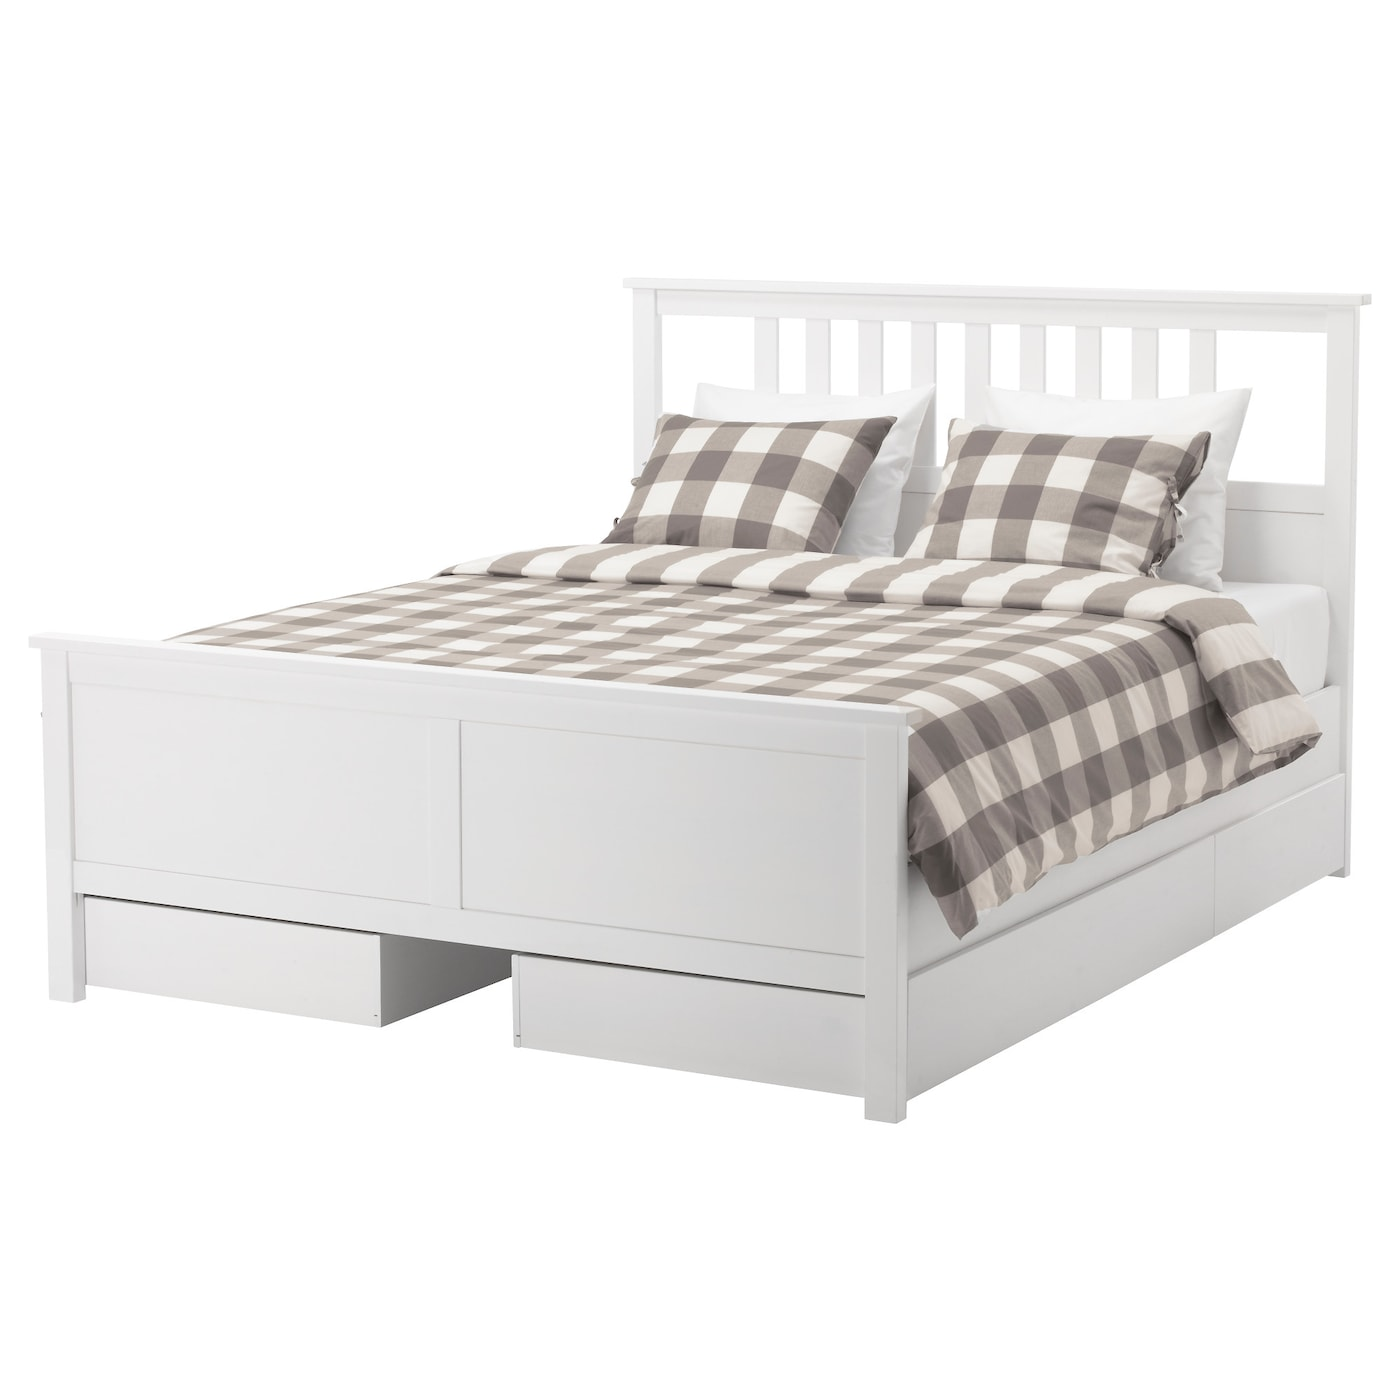 Hemnes bed frame with 4 storage boxes white stain lur y standard double ikea - Lit queen size dimension ...